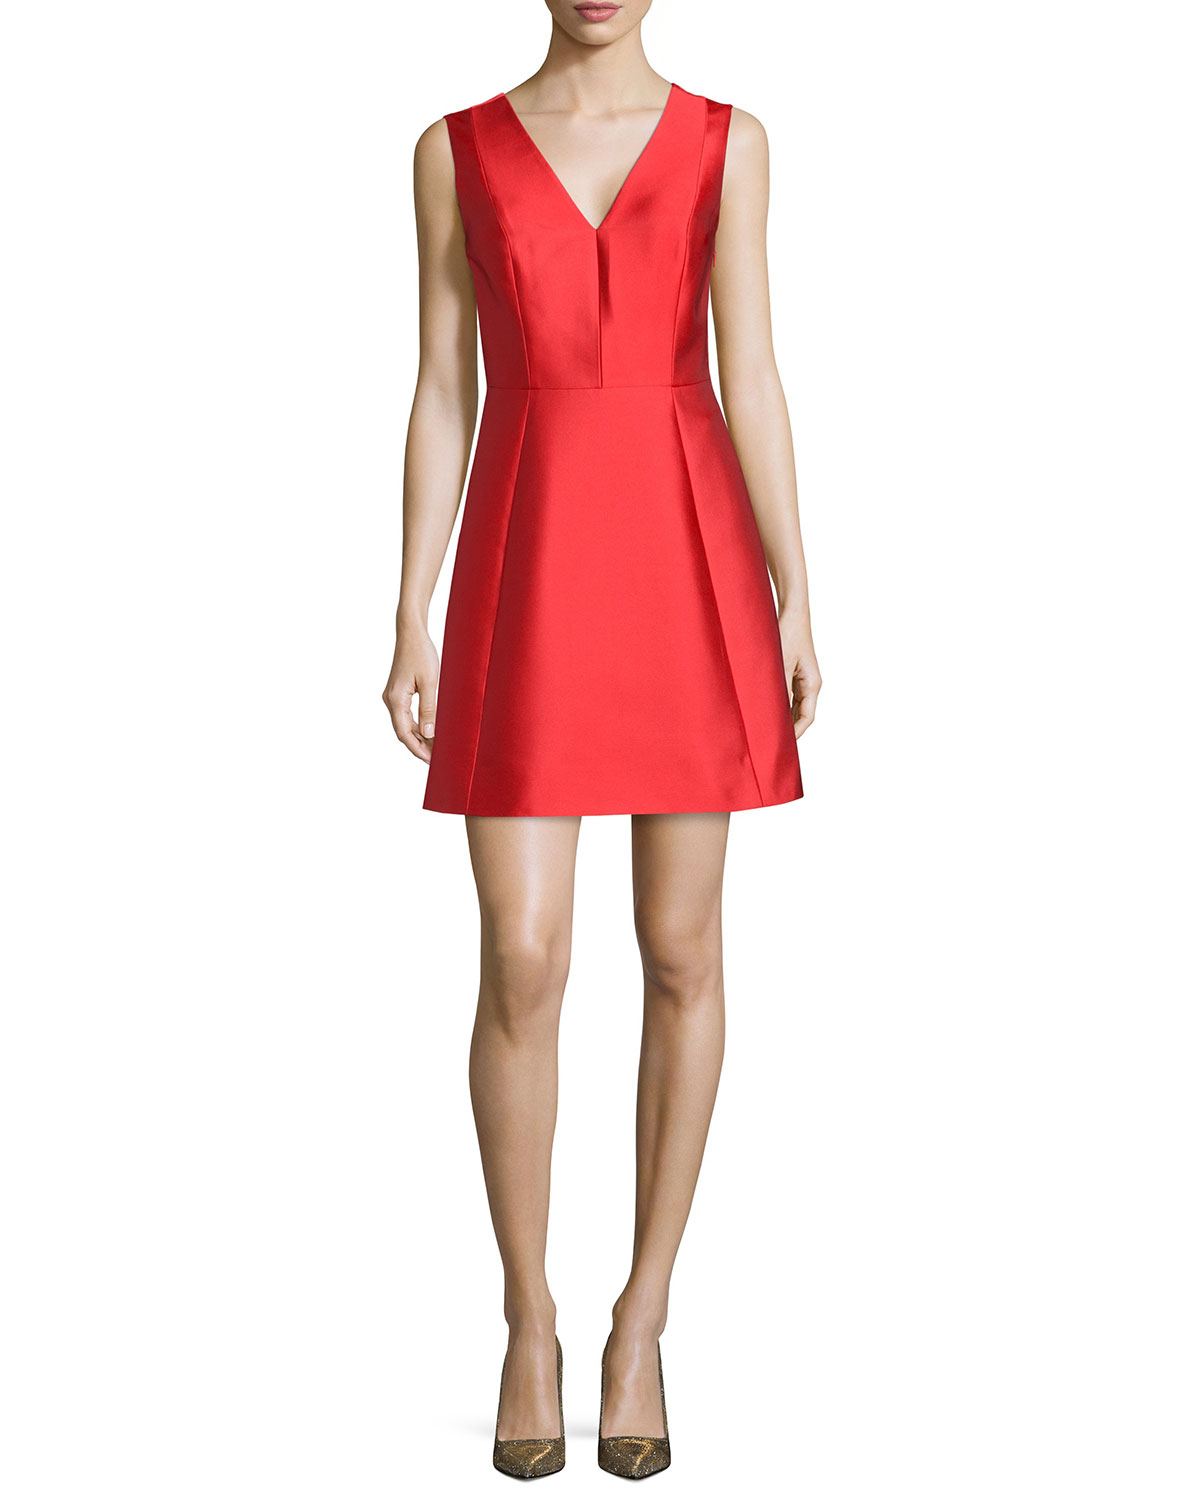 sleeveless bow-back fit-and-flare dress, Women's, Size: 0, Fairytale Red - kate spade new york